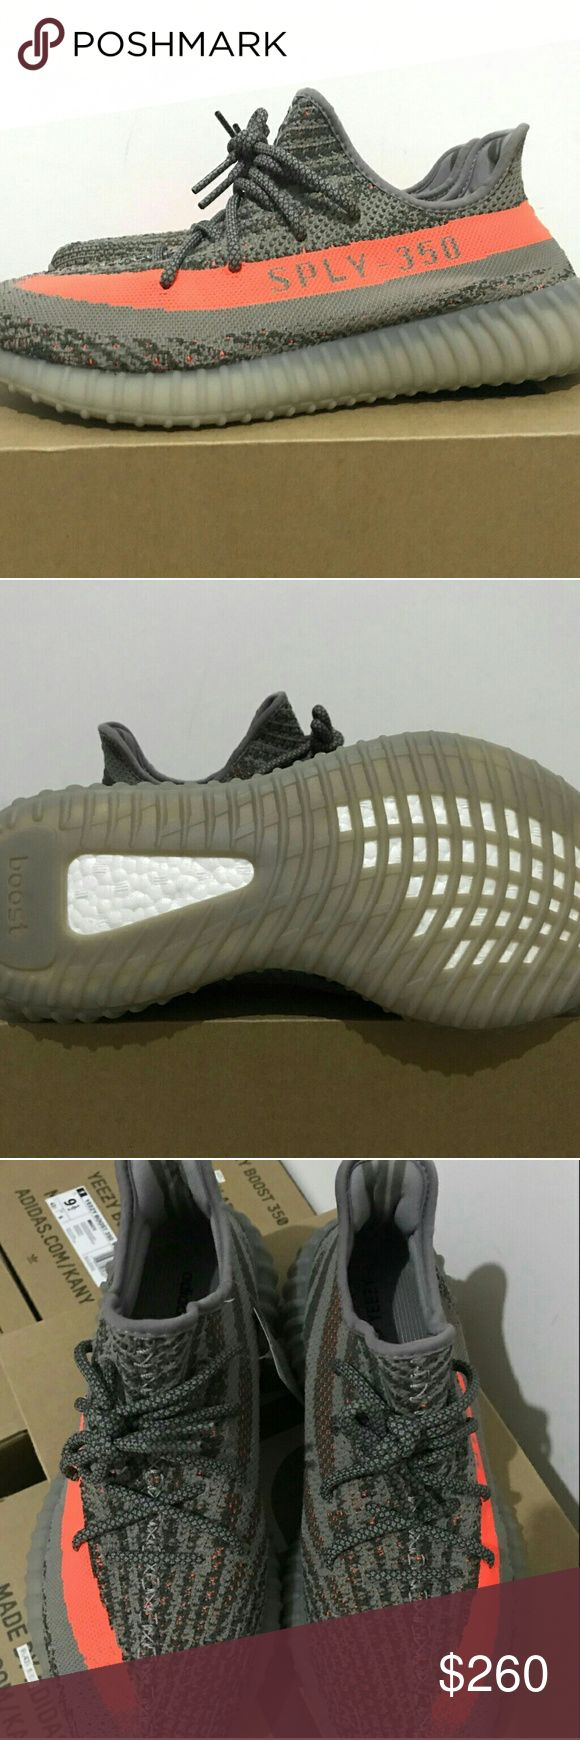 authentic adidas yeezy boost 350 v2 real boost and pls tell us your email or contact us for $30 discounts and more pics:   WhatsAPP: +86 17081930391 Kik: topsneakersseller or email: topsneakersseller@outlook.com Everything of them are the same as originals in adidas store and have highest performance cost. We have many good feedback can show you Yeezy Shoes Sneakers